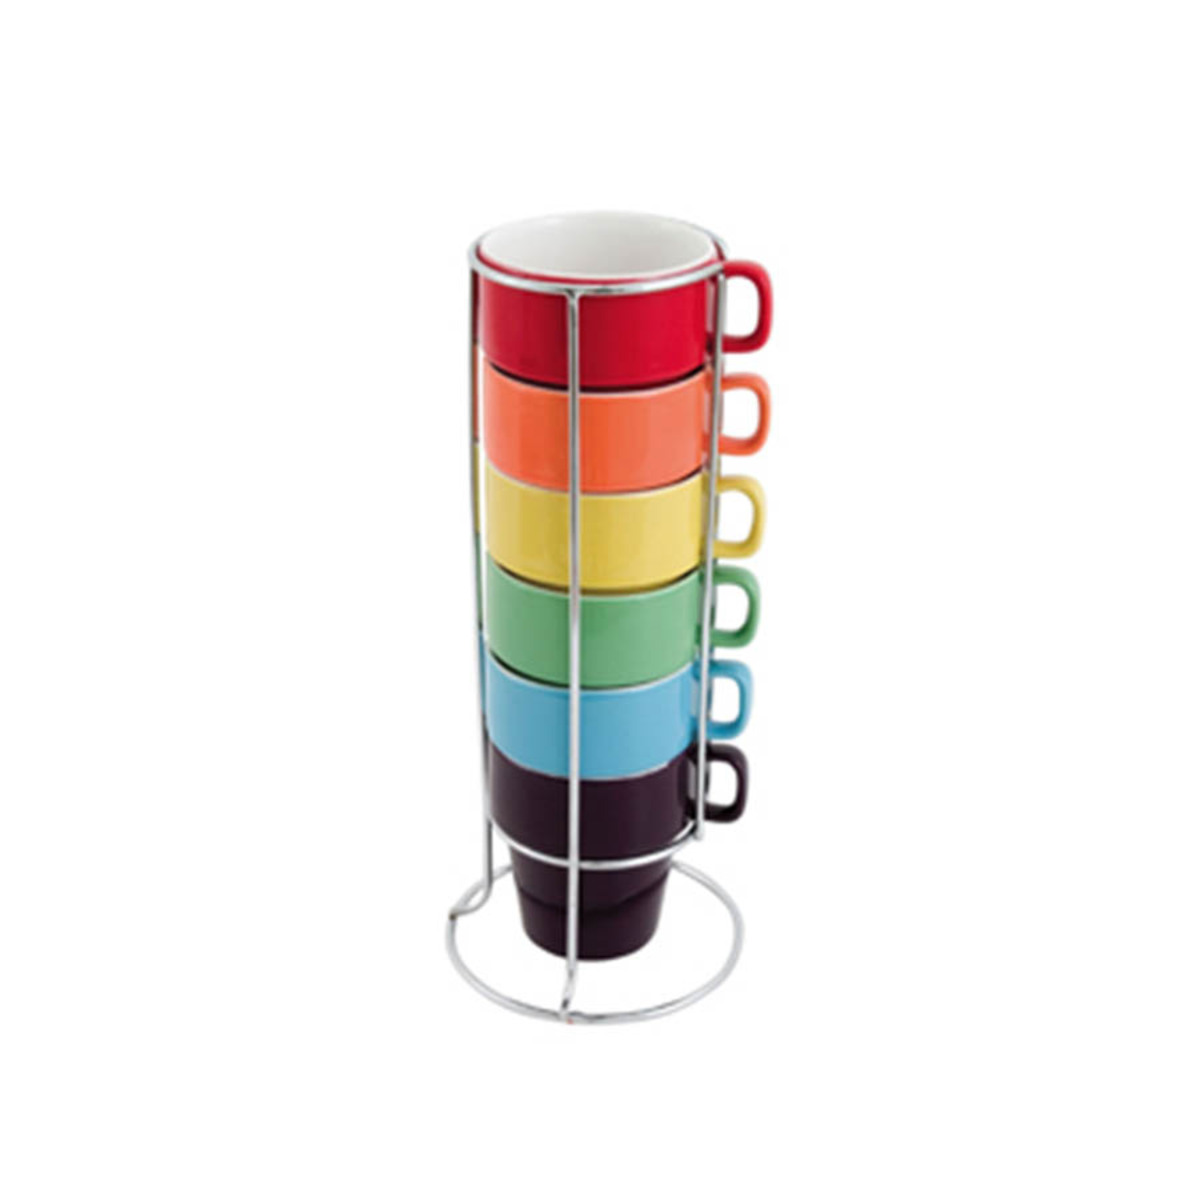 Set de 6 tasses cappuccino multicolores en céramique